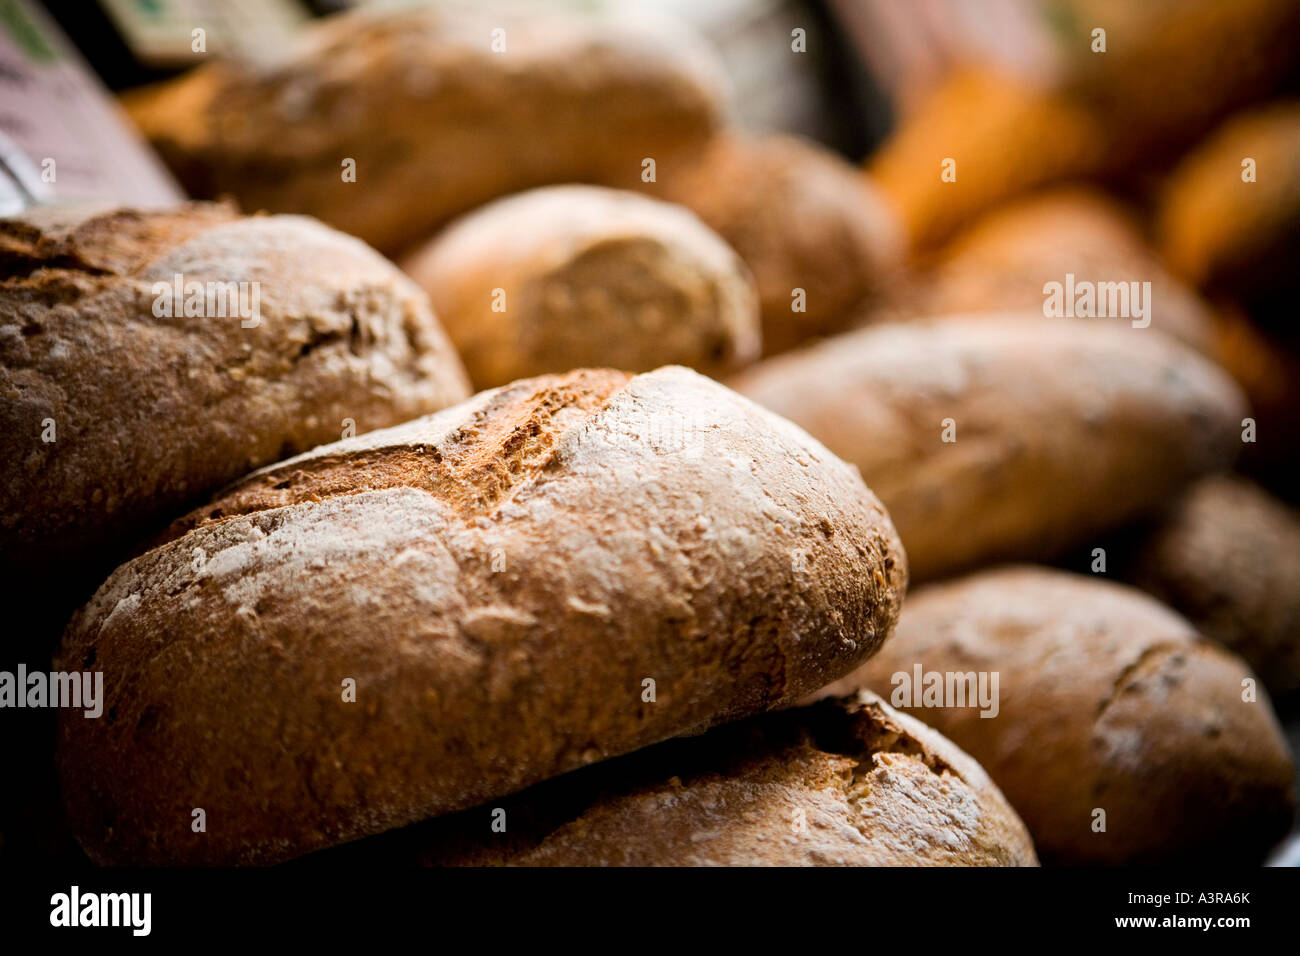 Freshly baked loaves of bread on a bread stall in London Borough market - Stock Image